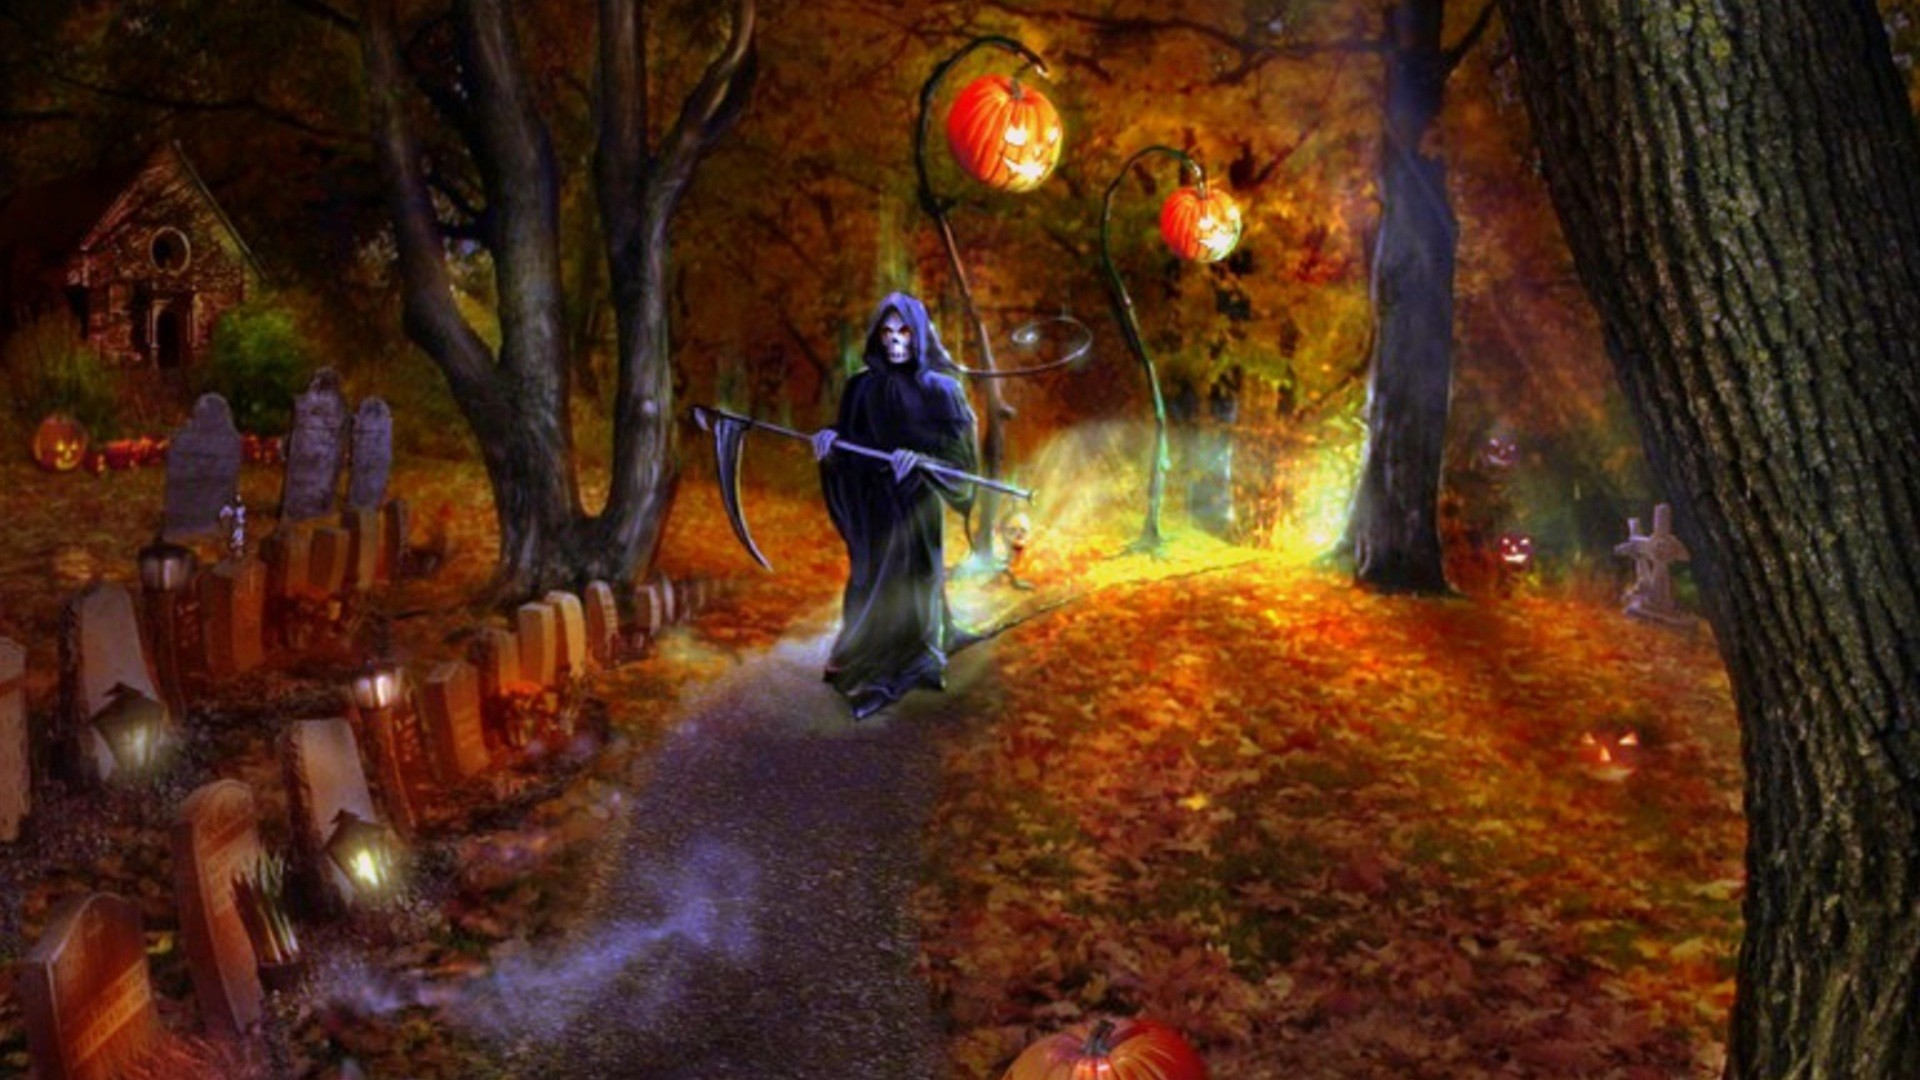 Fall Pumpkin Computer Wallpaper Halloween Wallpaper 67 Images